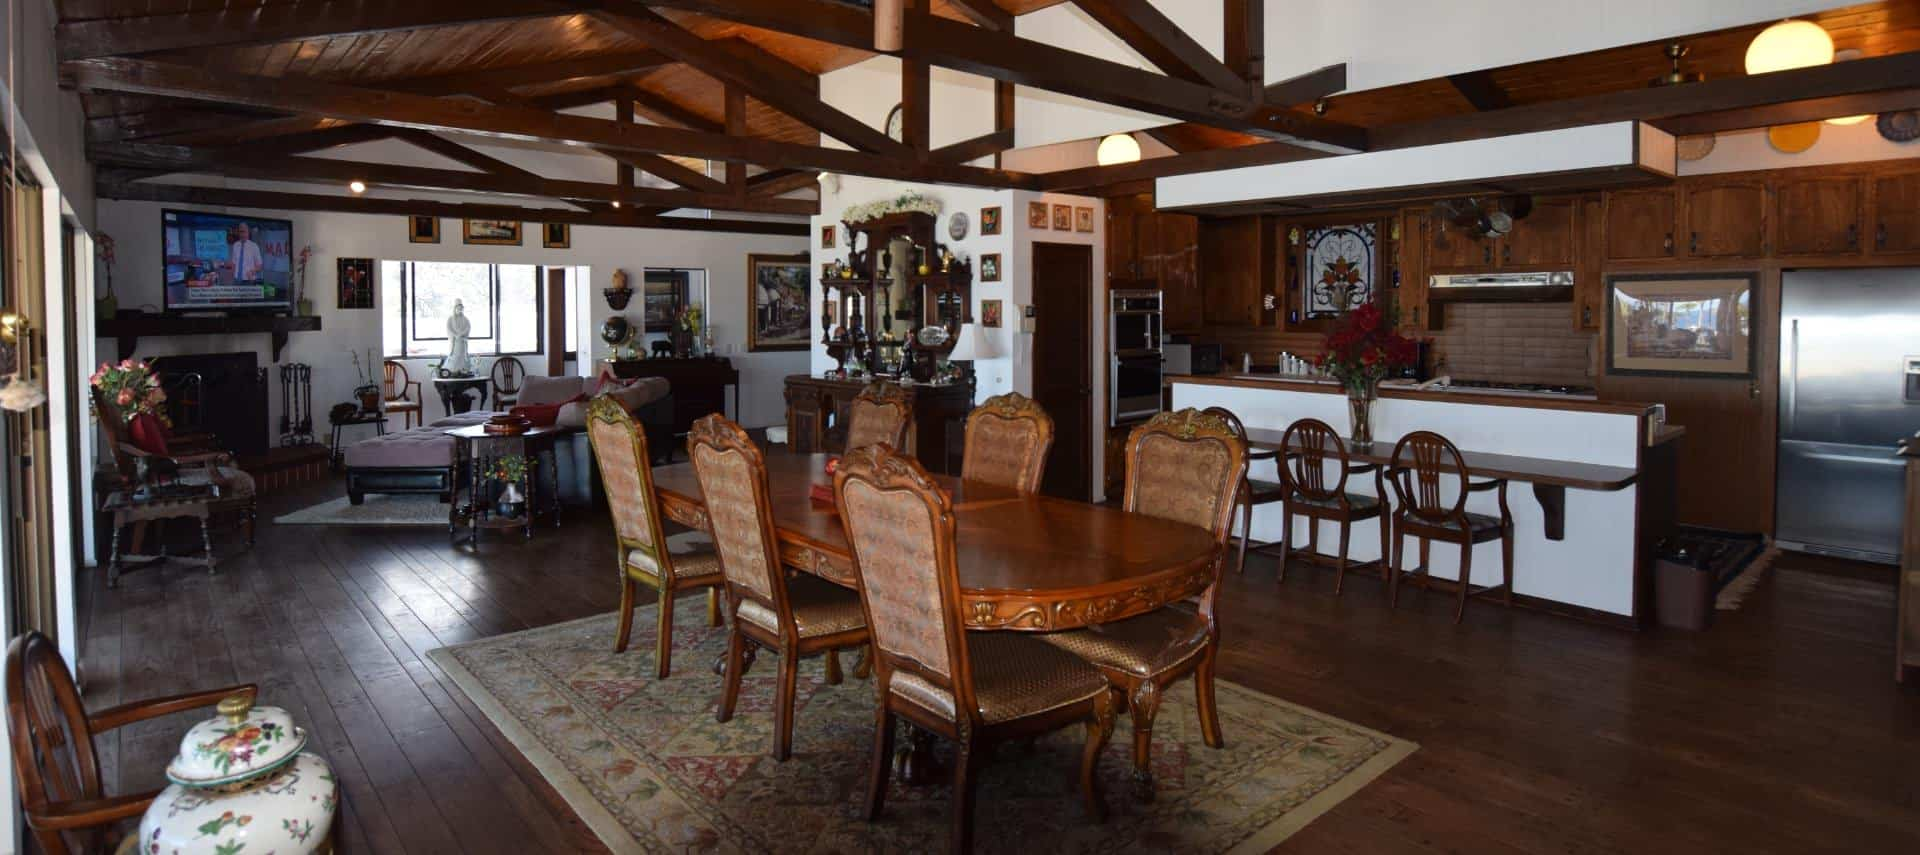 Very large living space with wood floor, ceiling, and beams including large ornate wooden dining table, kitchen area, sitting area, fireplace, and large flat-screen TV